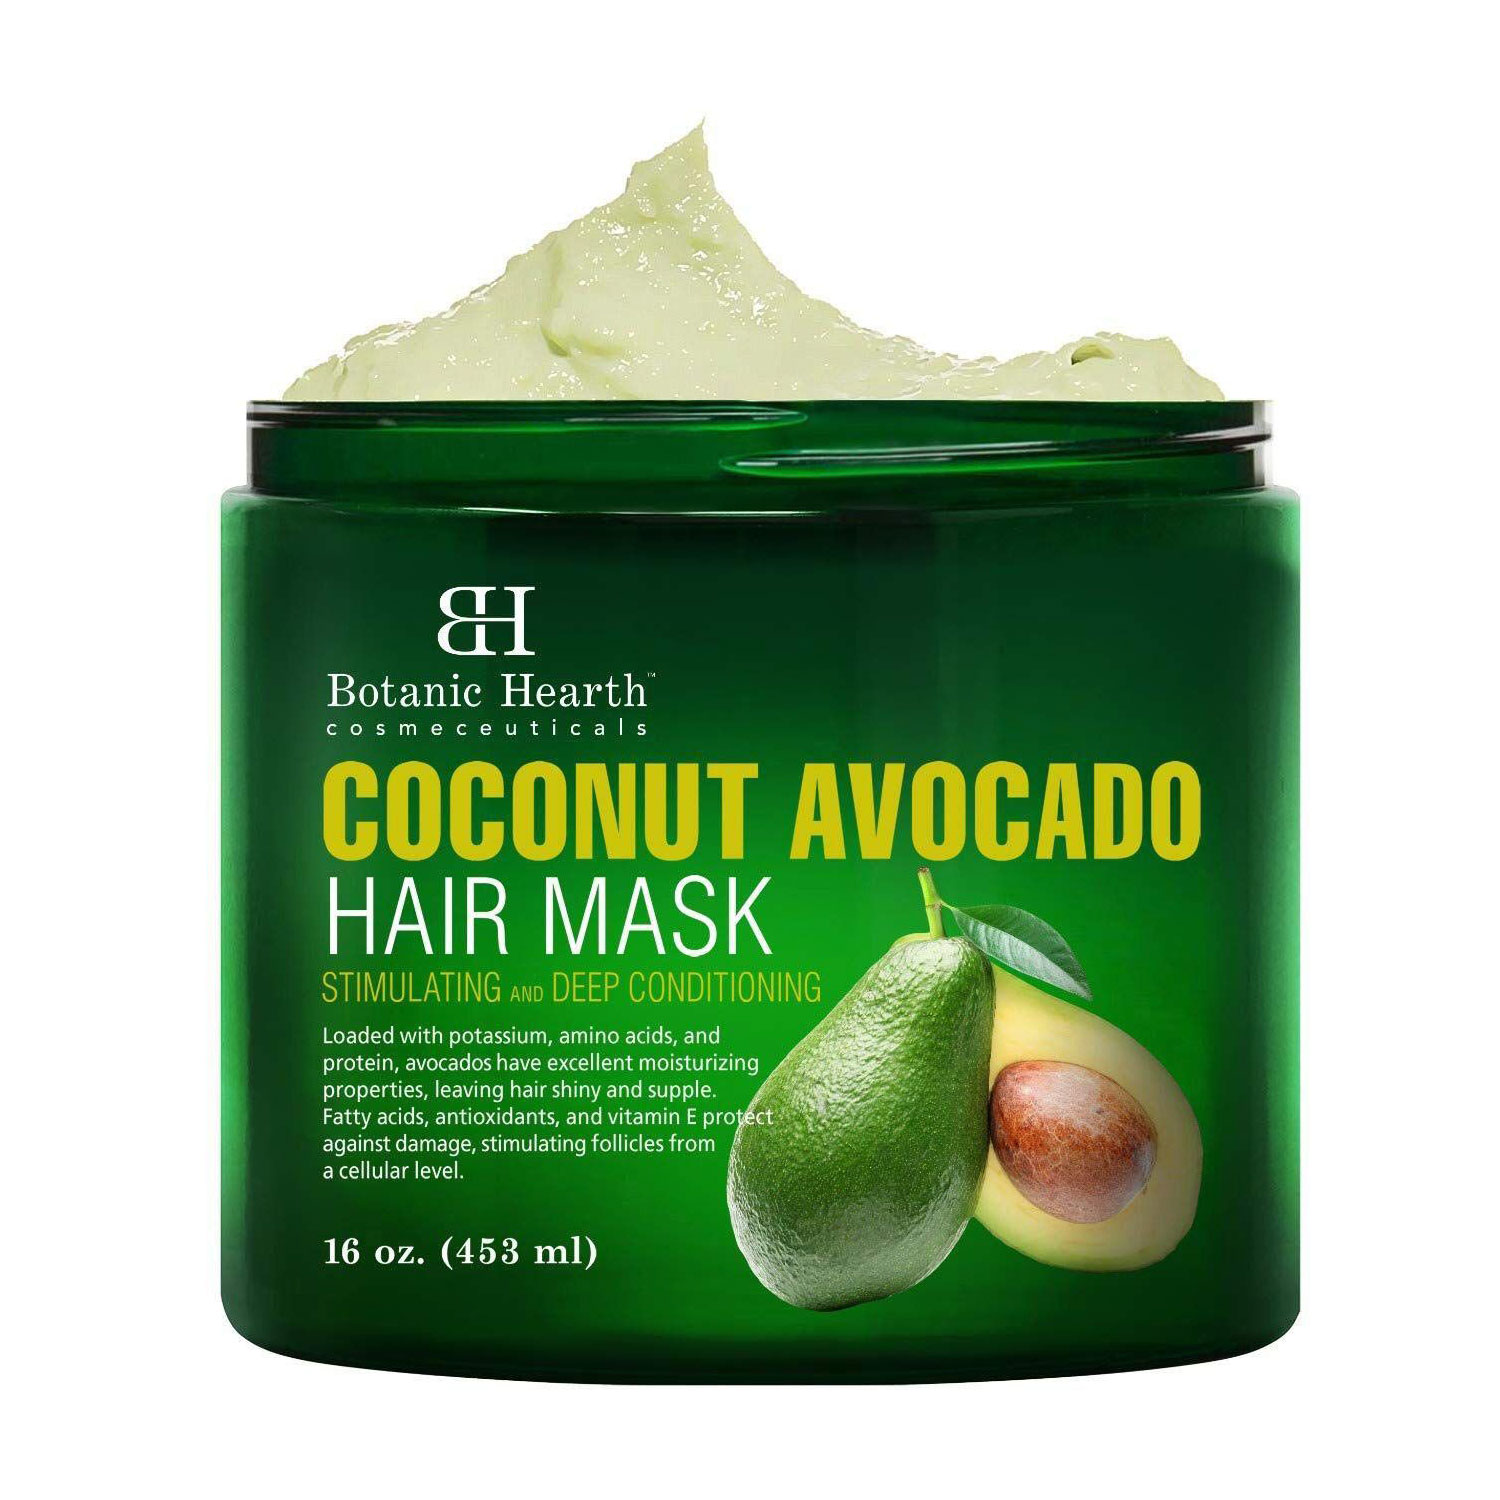 Botanic Hearth Coconut Avocado Hair Mask